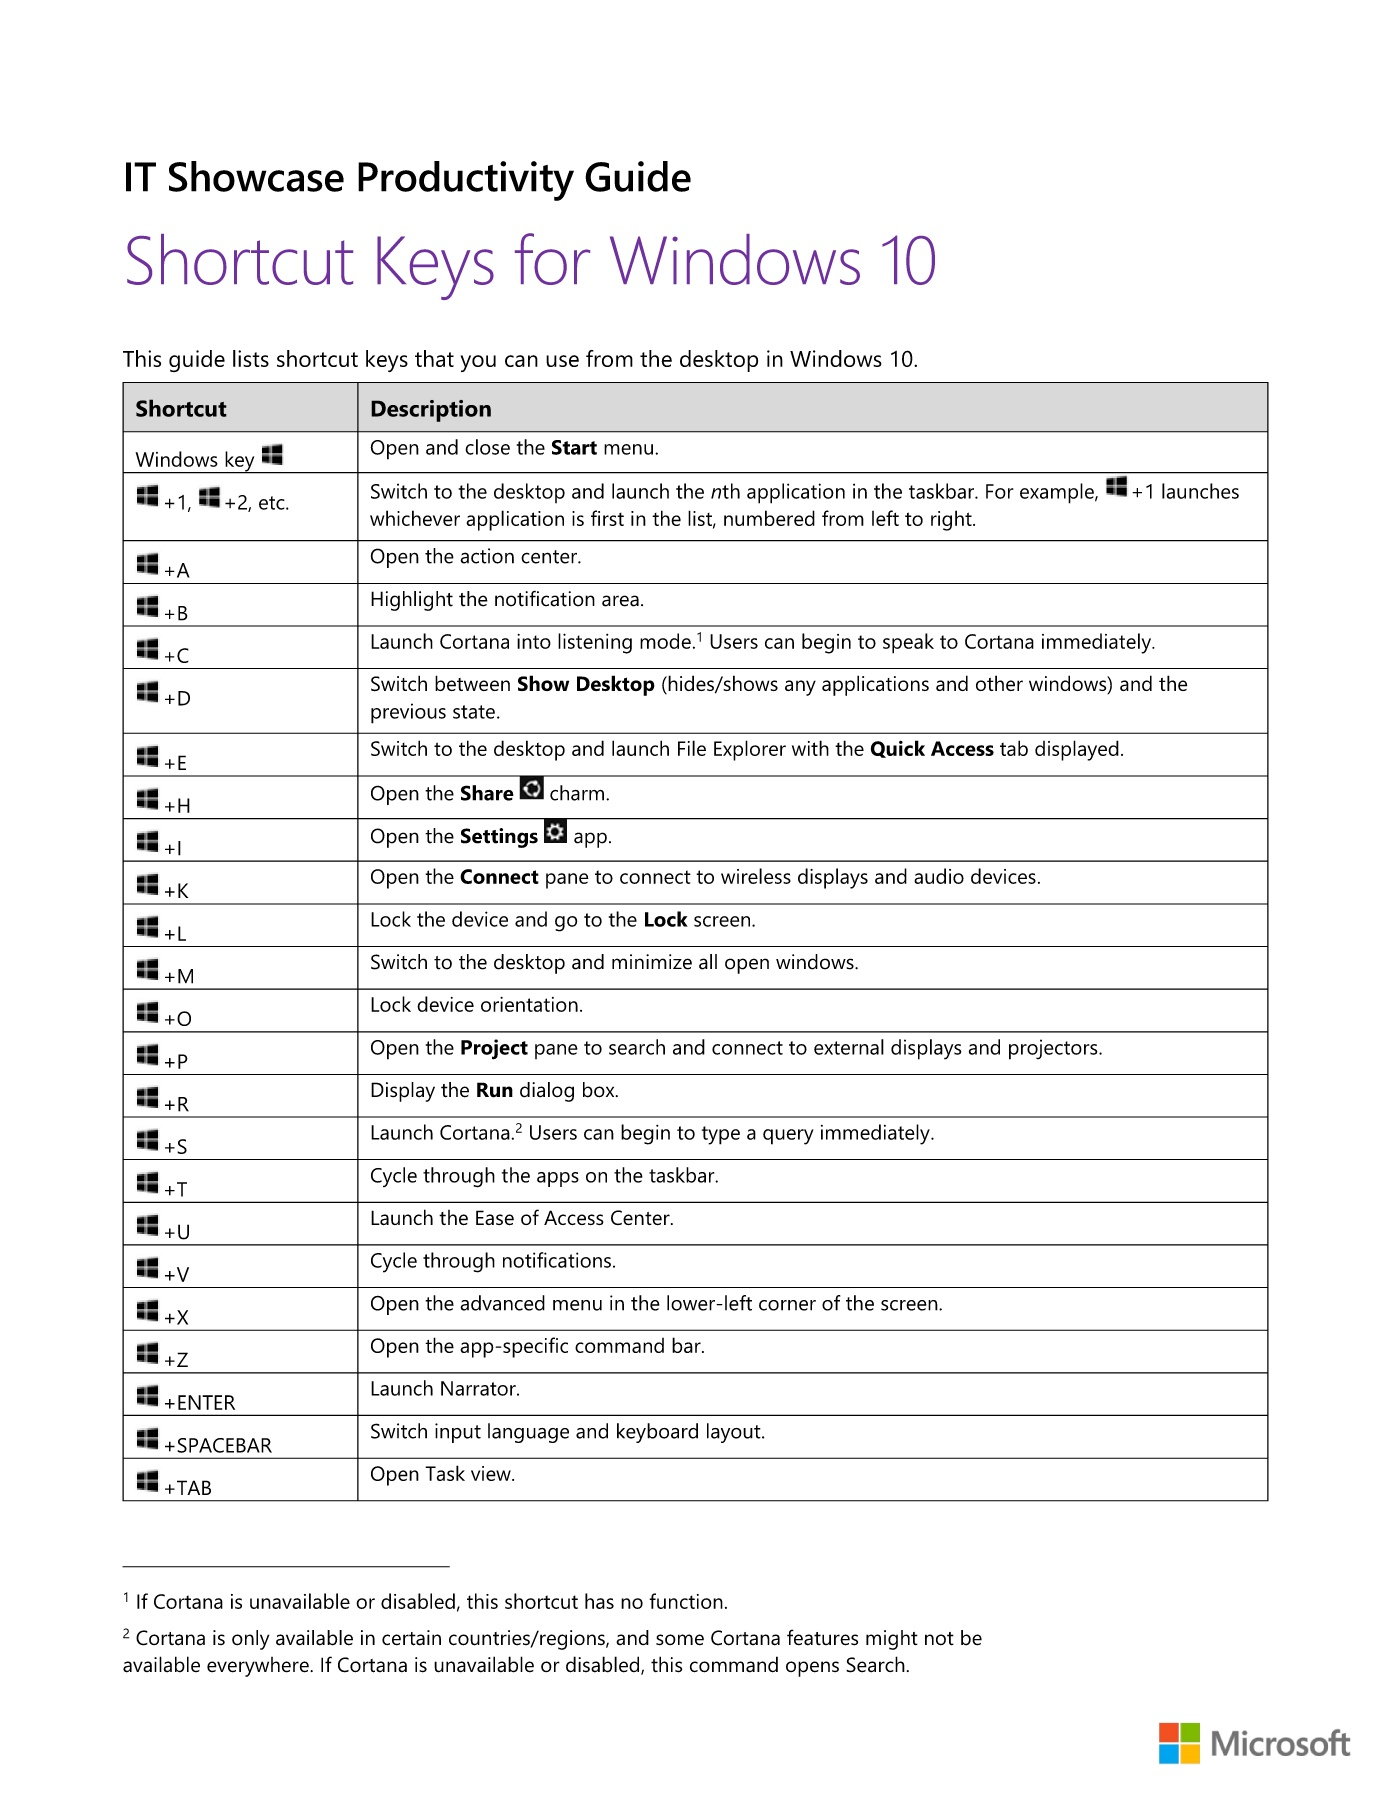 42-Windows-10-Hotkeys Pages 1 - 2 - Text Version | AnyFlip